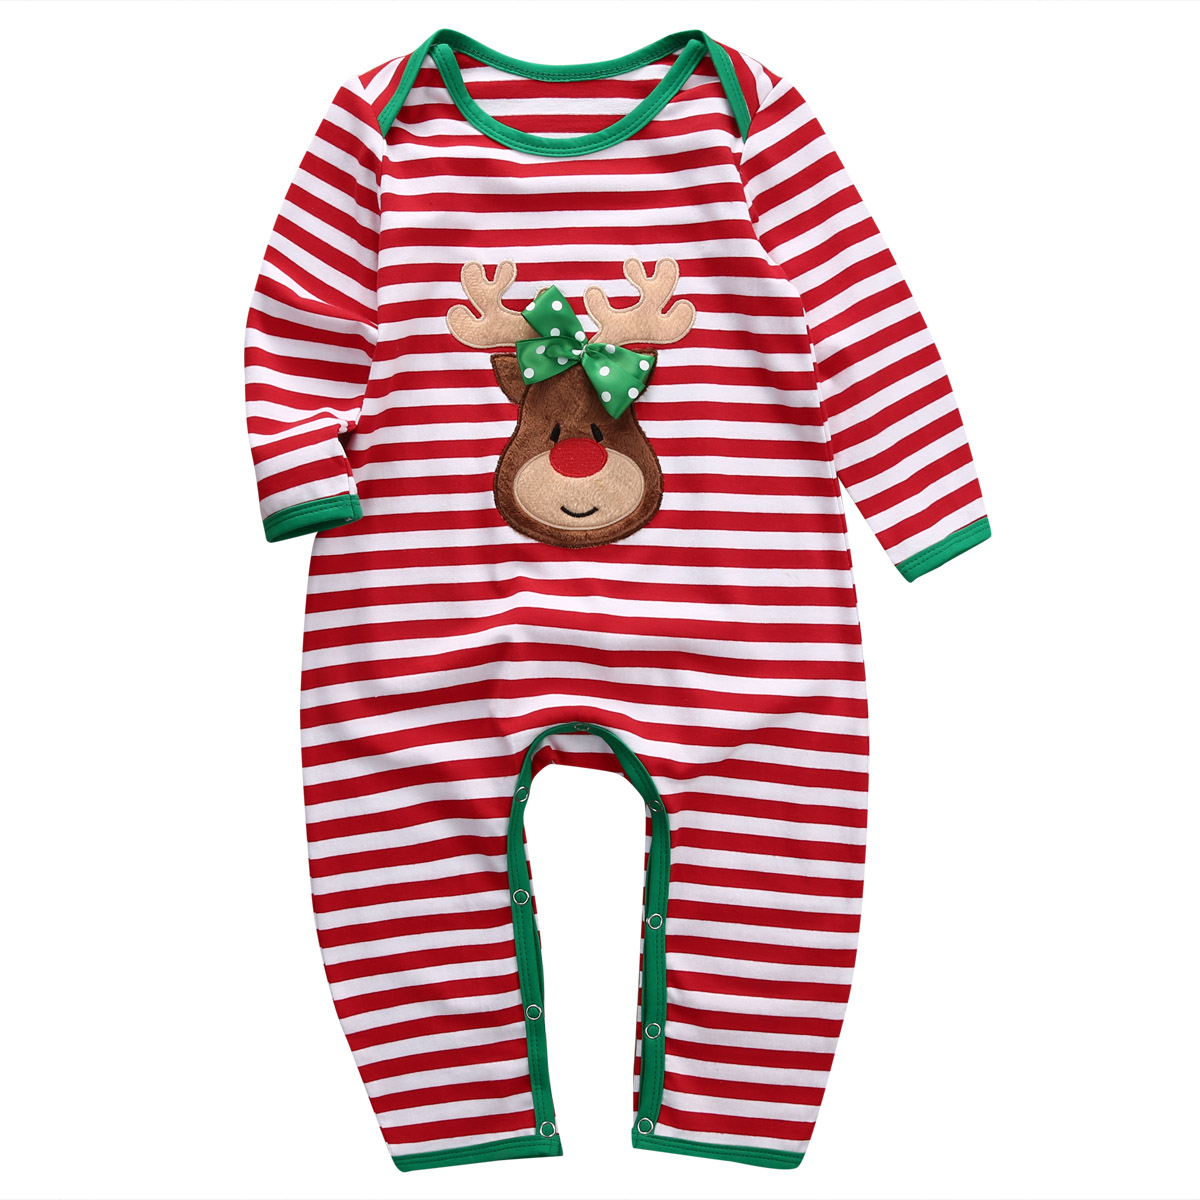 2017 red Baby Girl Boy Clothes Pajamas Outfit Newborn Kids Christmas Babies suit Romper Pj's